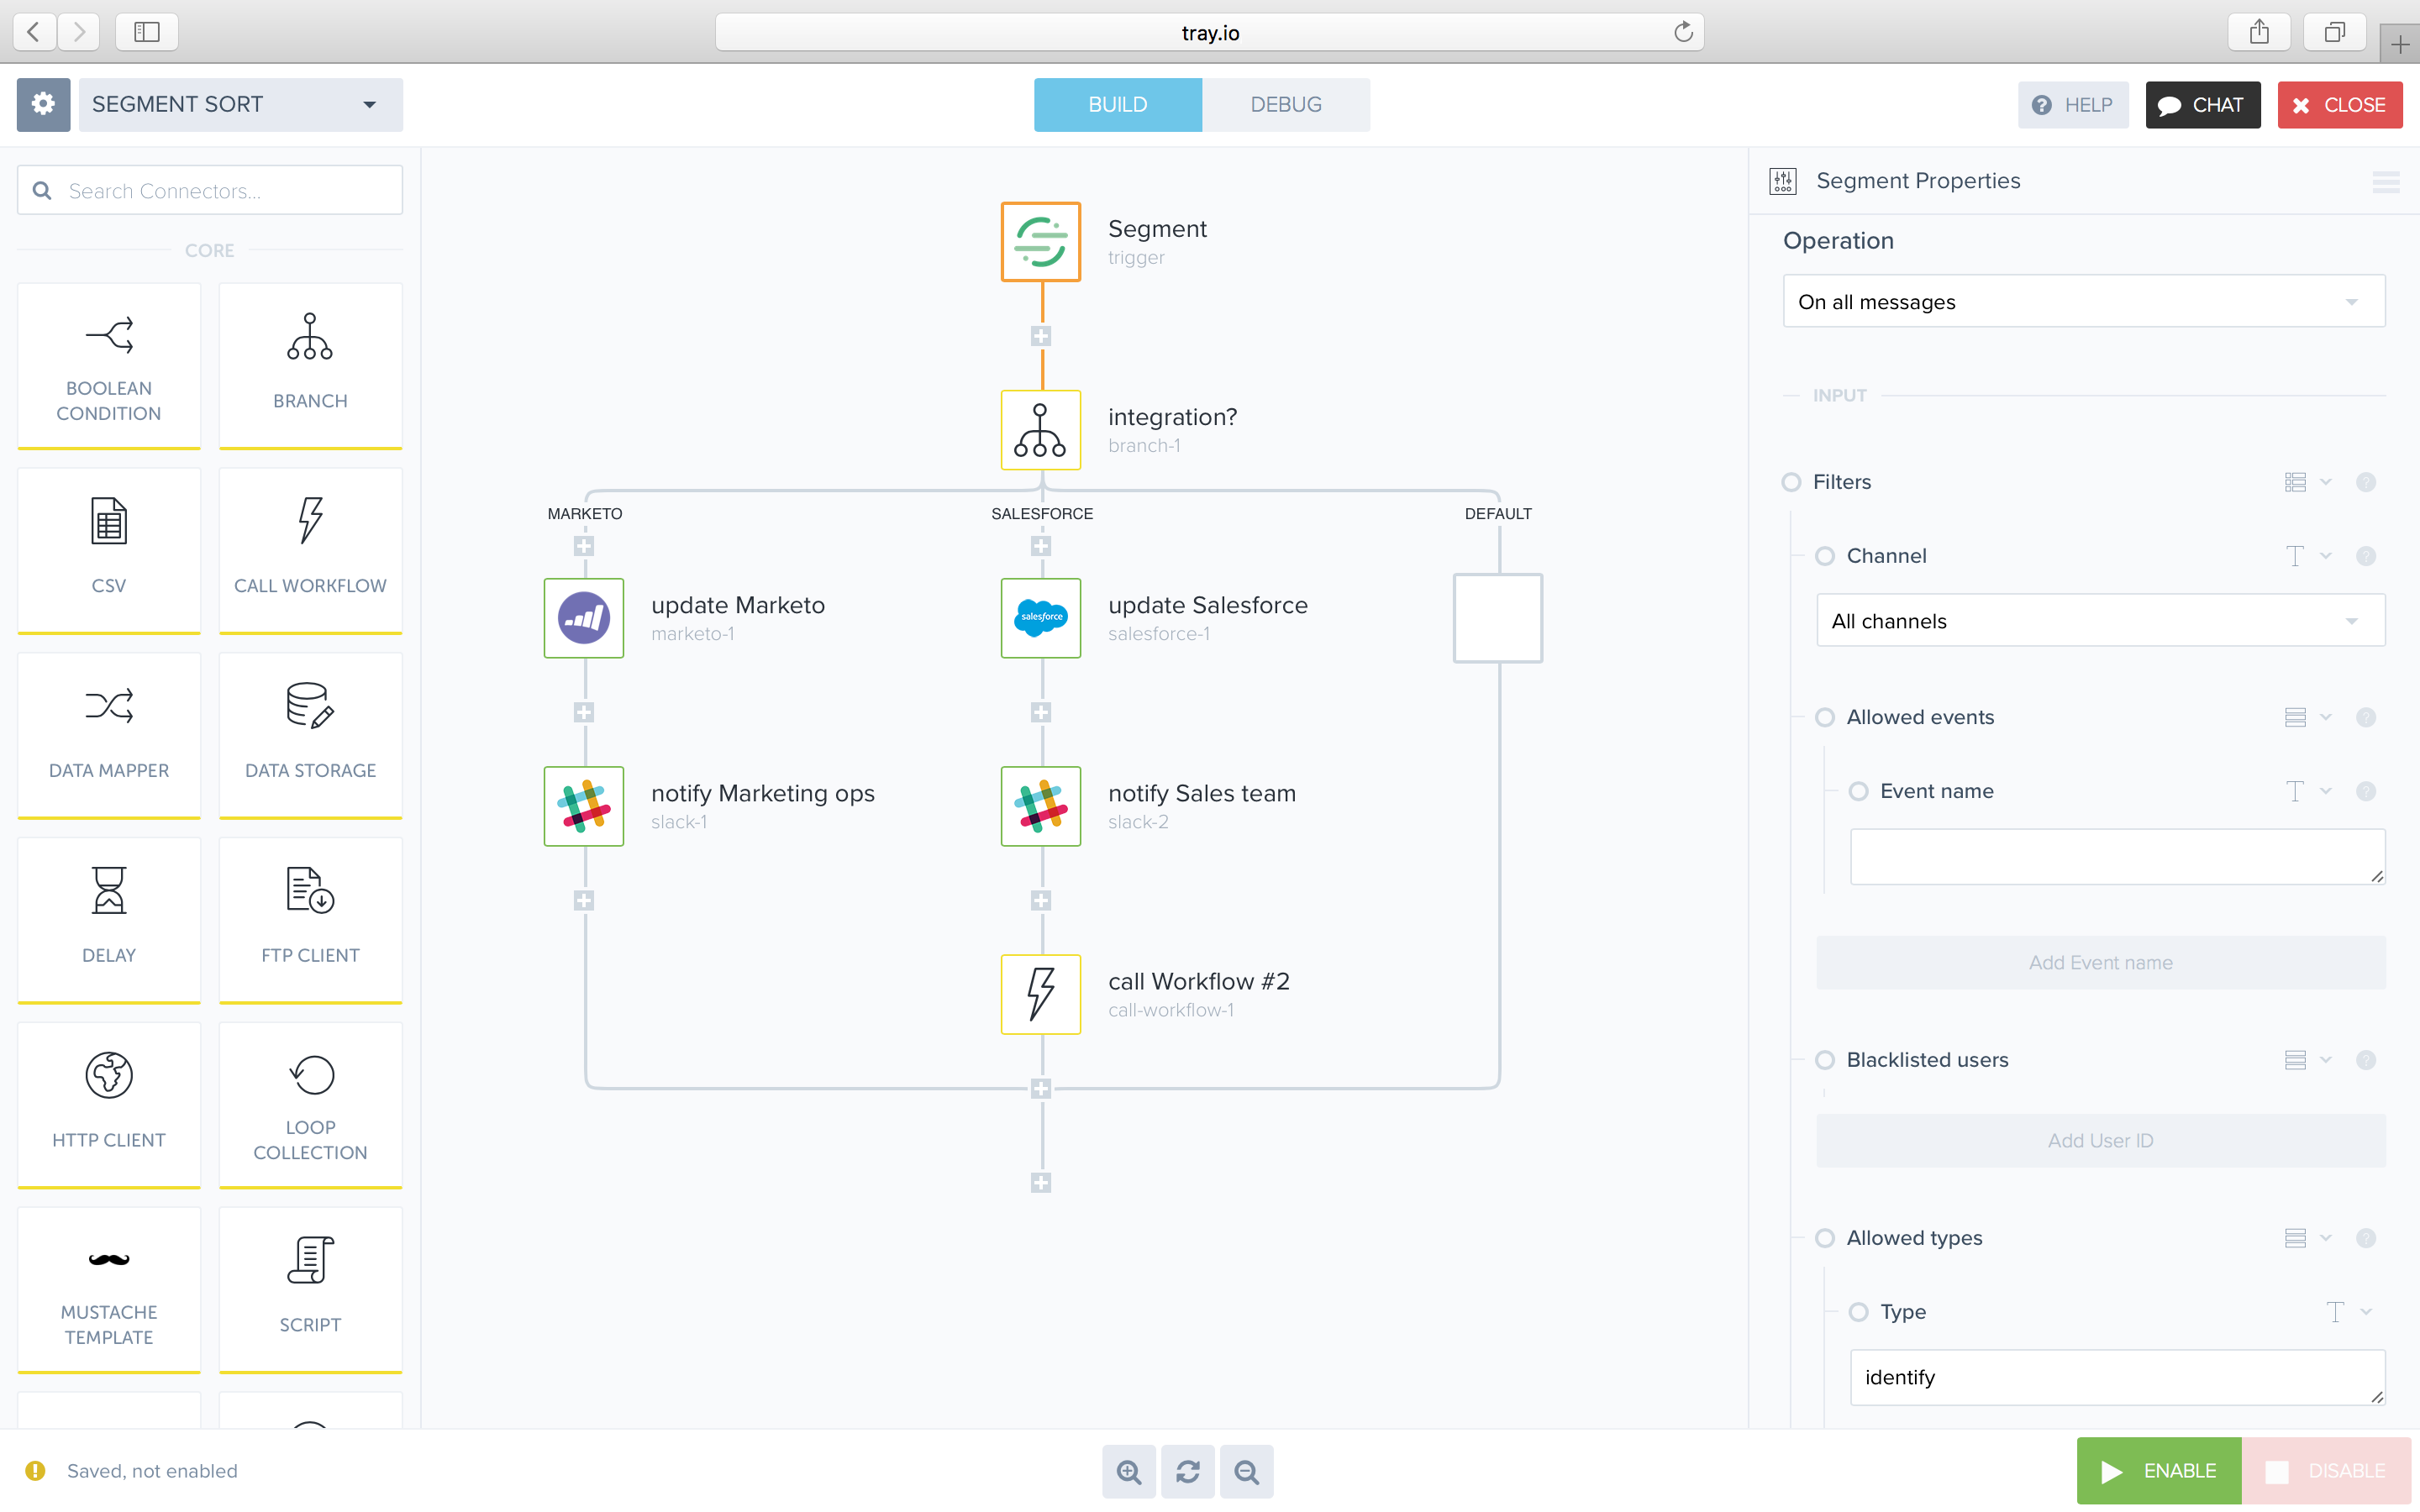 Tray.io Demo - MultipleServicesWorkflow.png